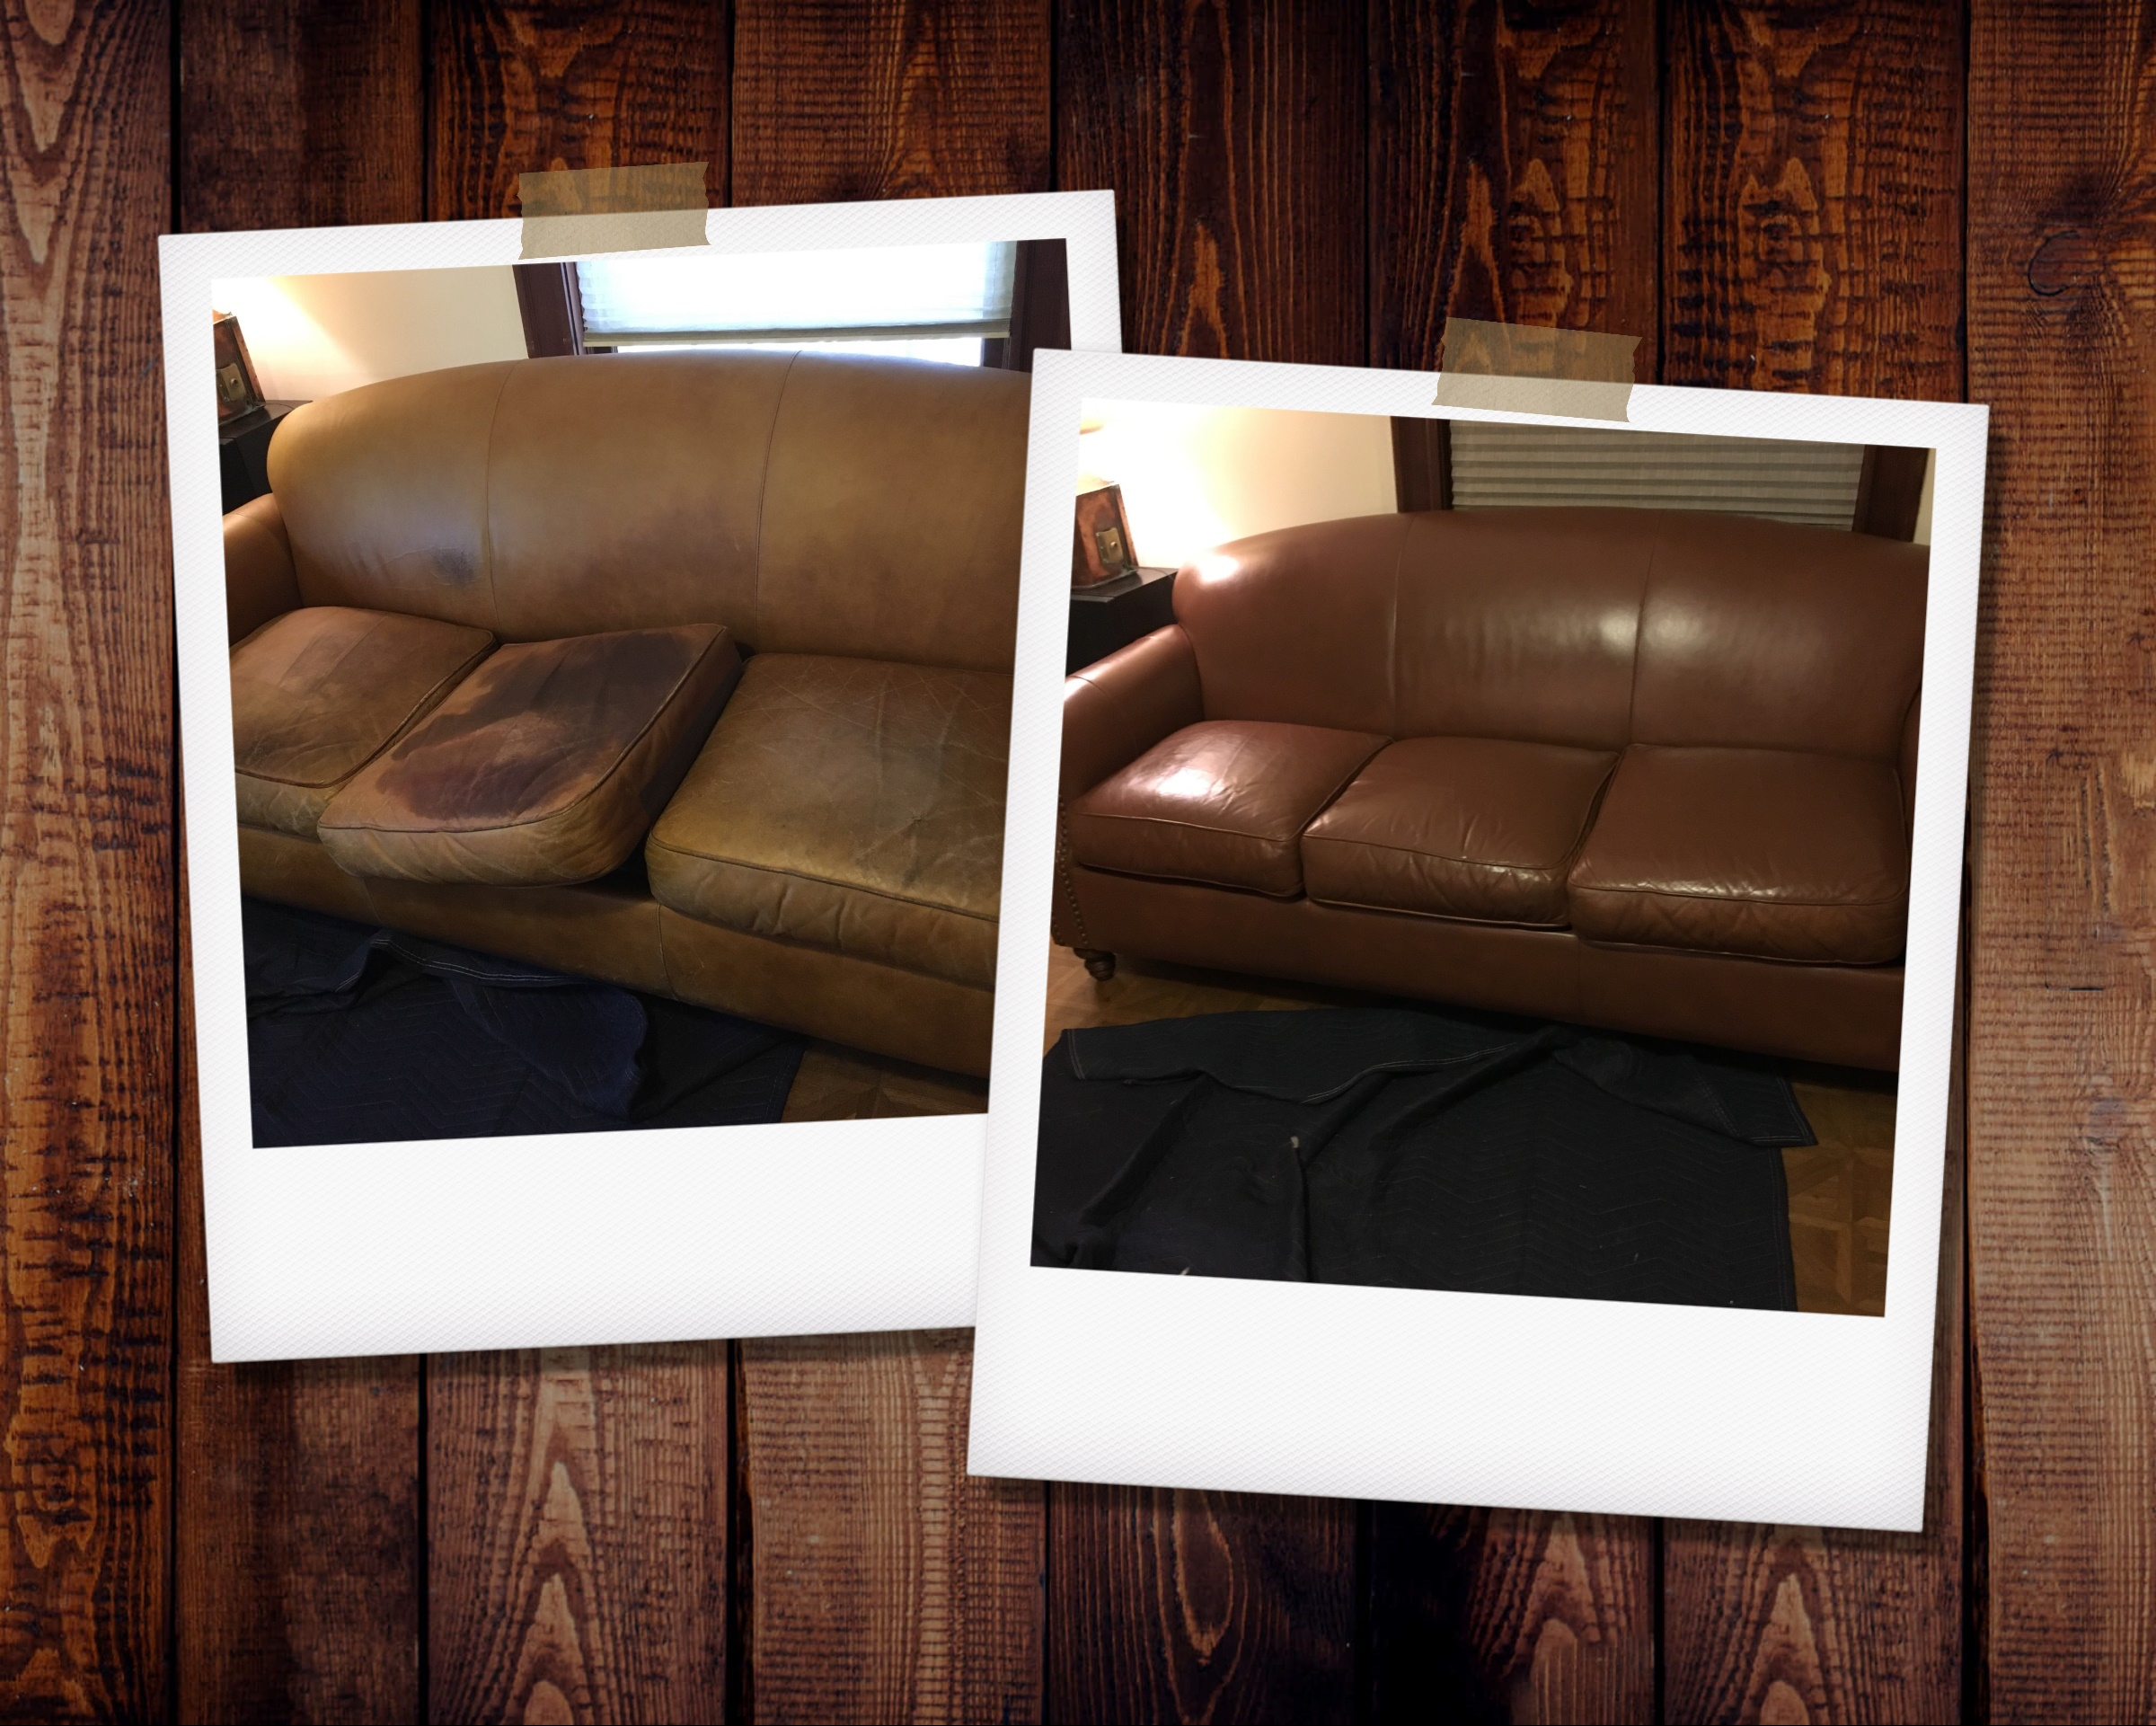 Miraculous Photos Before After Pics Of Repairs Furniture Fixology Pdpeps Interior Chair Design Pdpepsorg